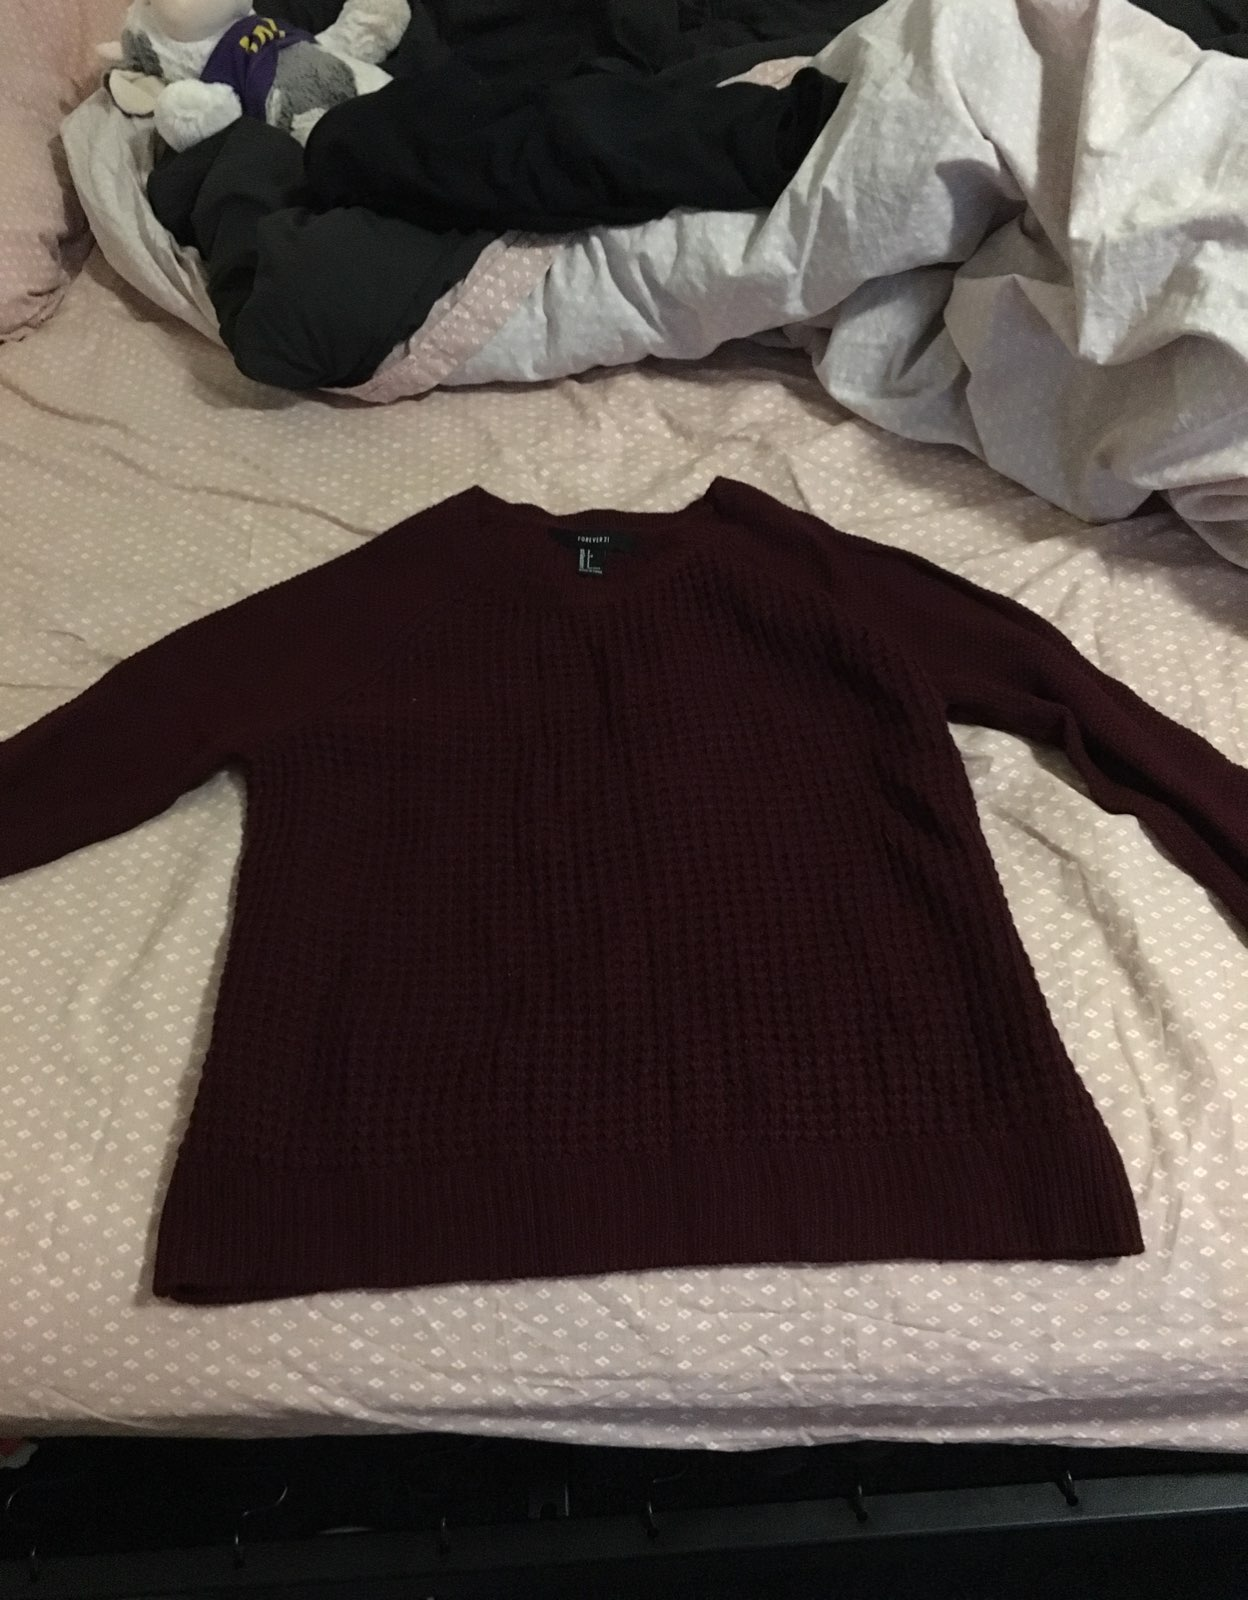 NWOT F21 Dark Maroon Sweater - Mercari: BUY & SELL THINGS YOU LOVE